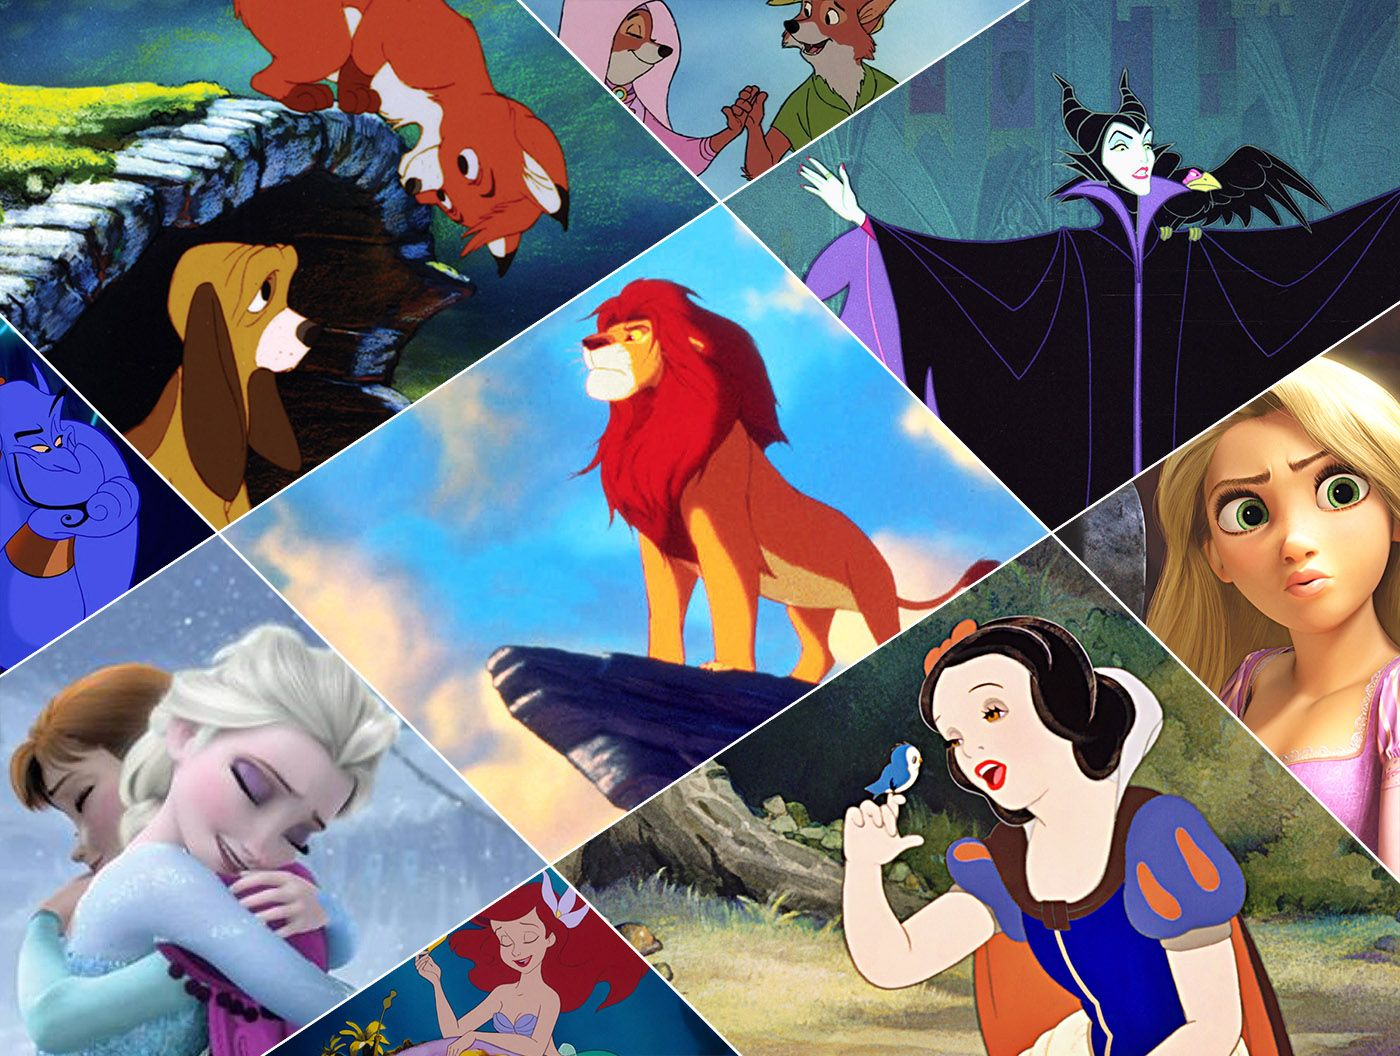 Disney cartoon movies ranked: is Beauty and the Beast best or is